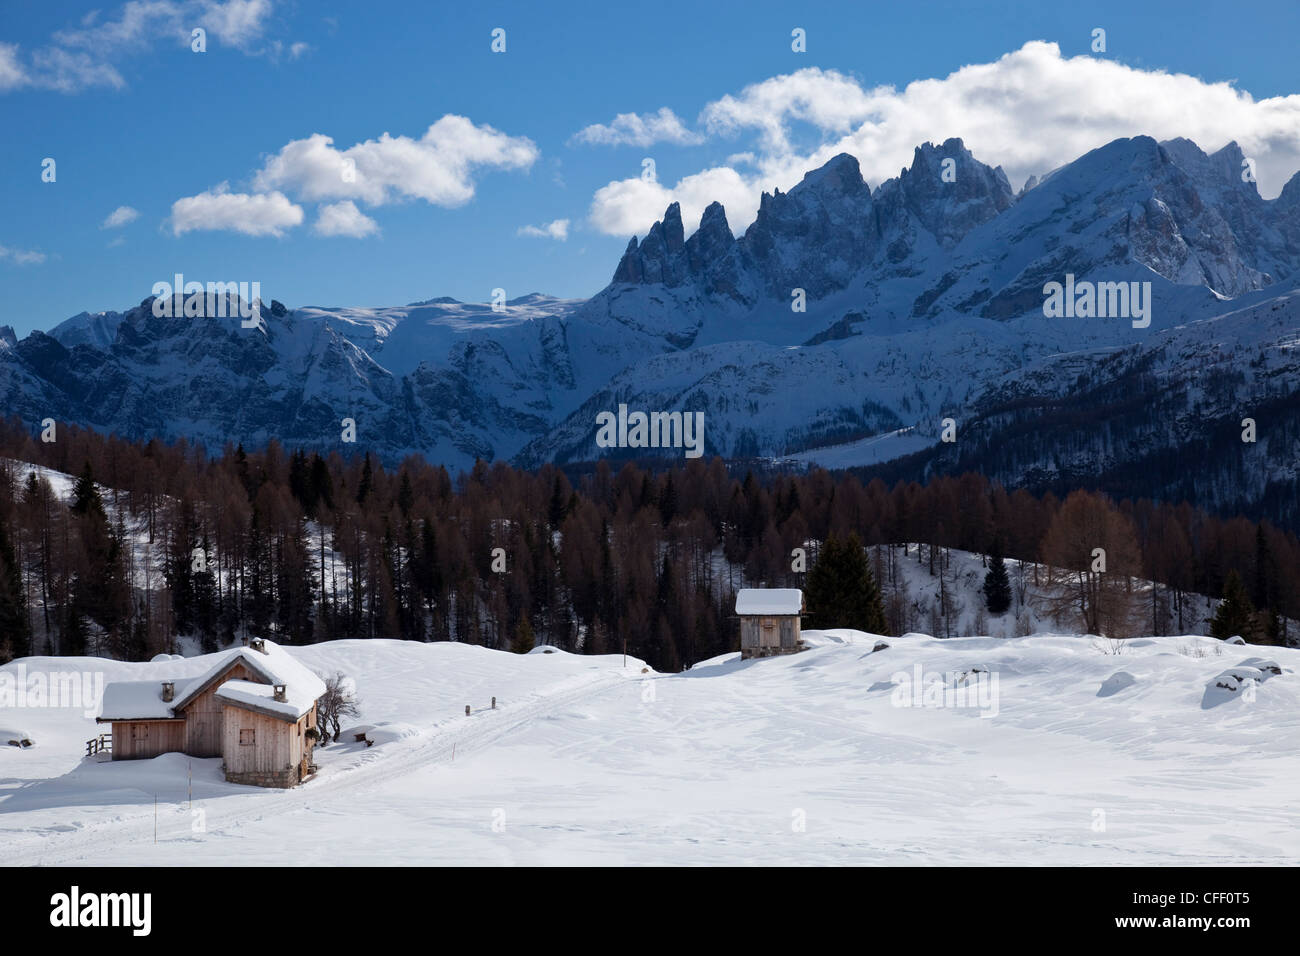 Chalets around San Pellegrino Pass and Pale di San Martino range in the background, Trentino Alto Adige, Italy, Stock Photo